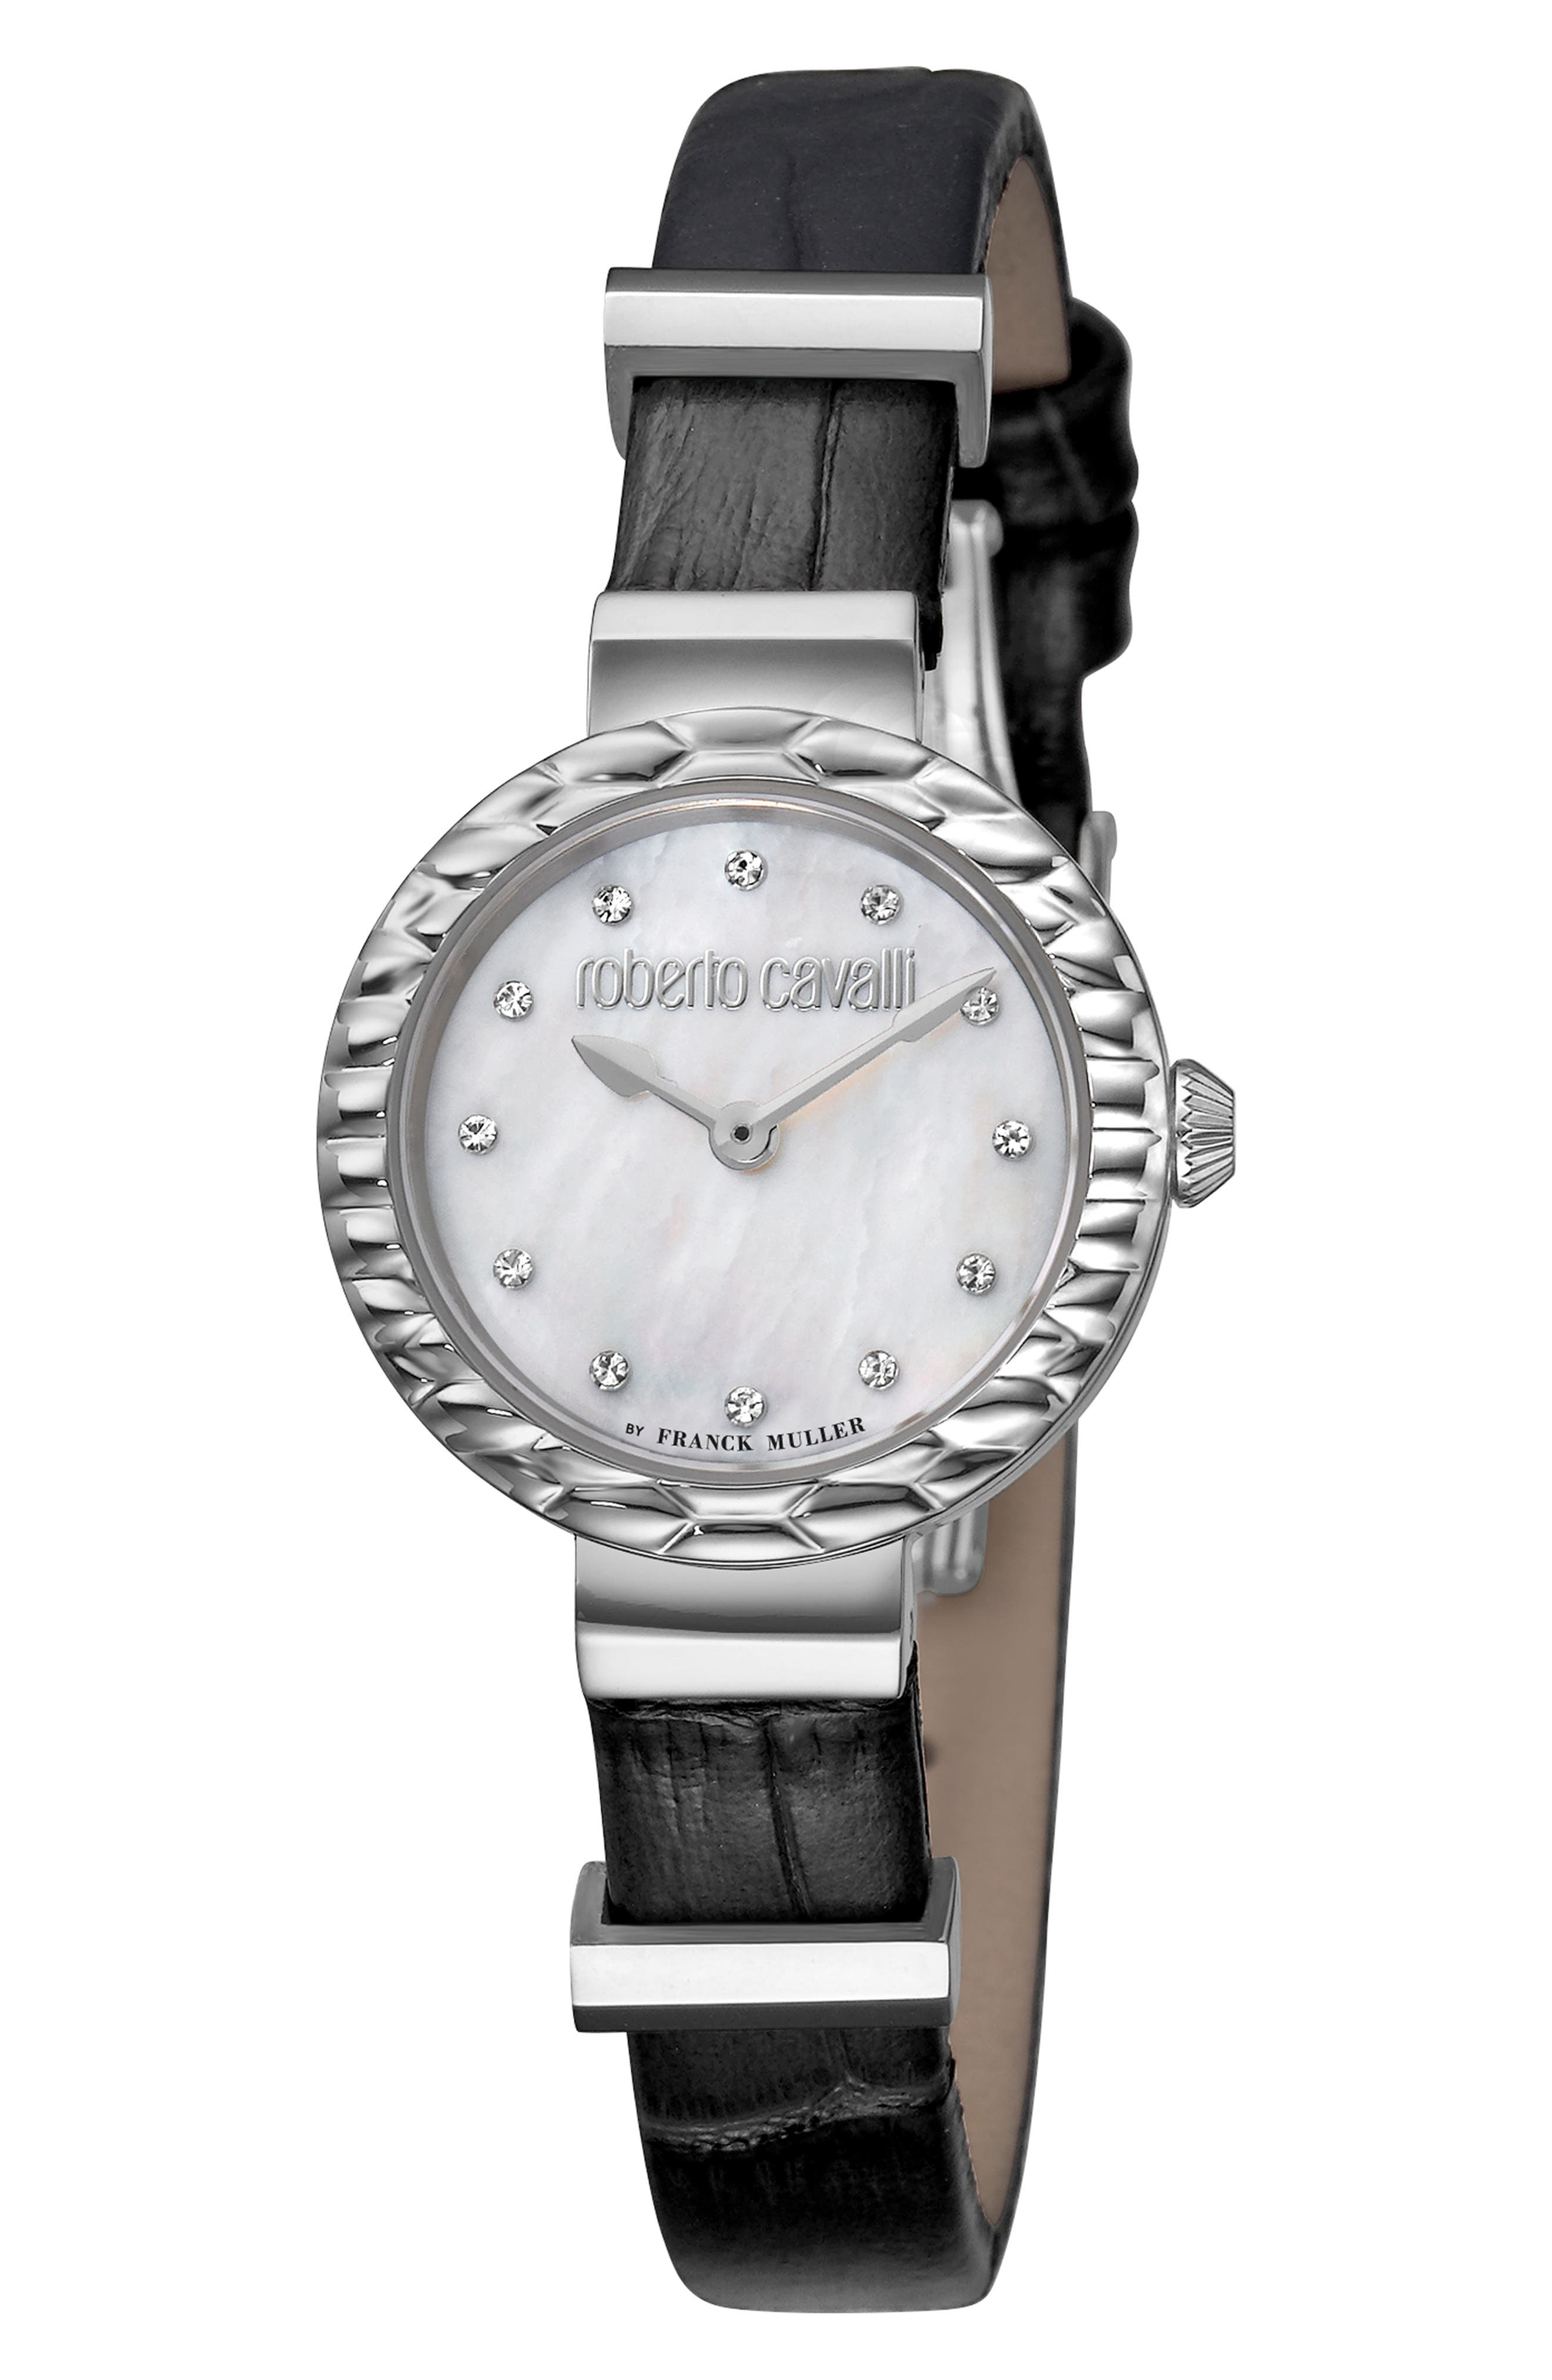 ROBERTO CAVALLI BY FRANCK MULLER Scala Diamond Leather Strap Watch, 26Mm in Black/ White Mop/ Silver